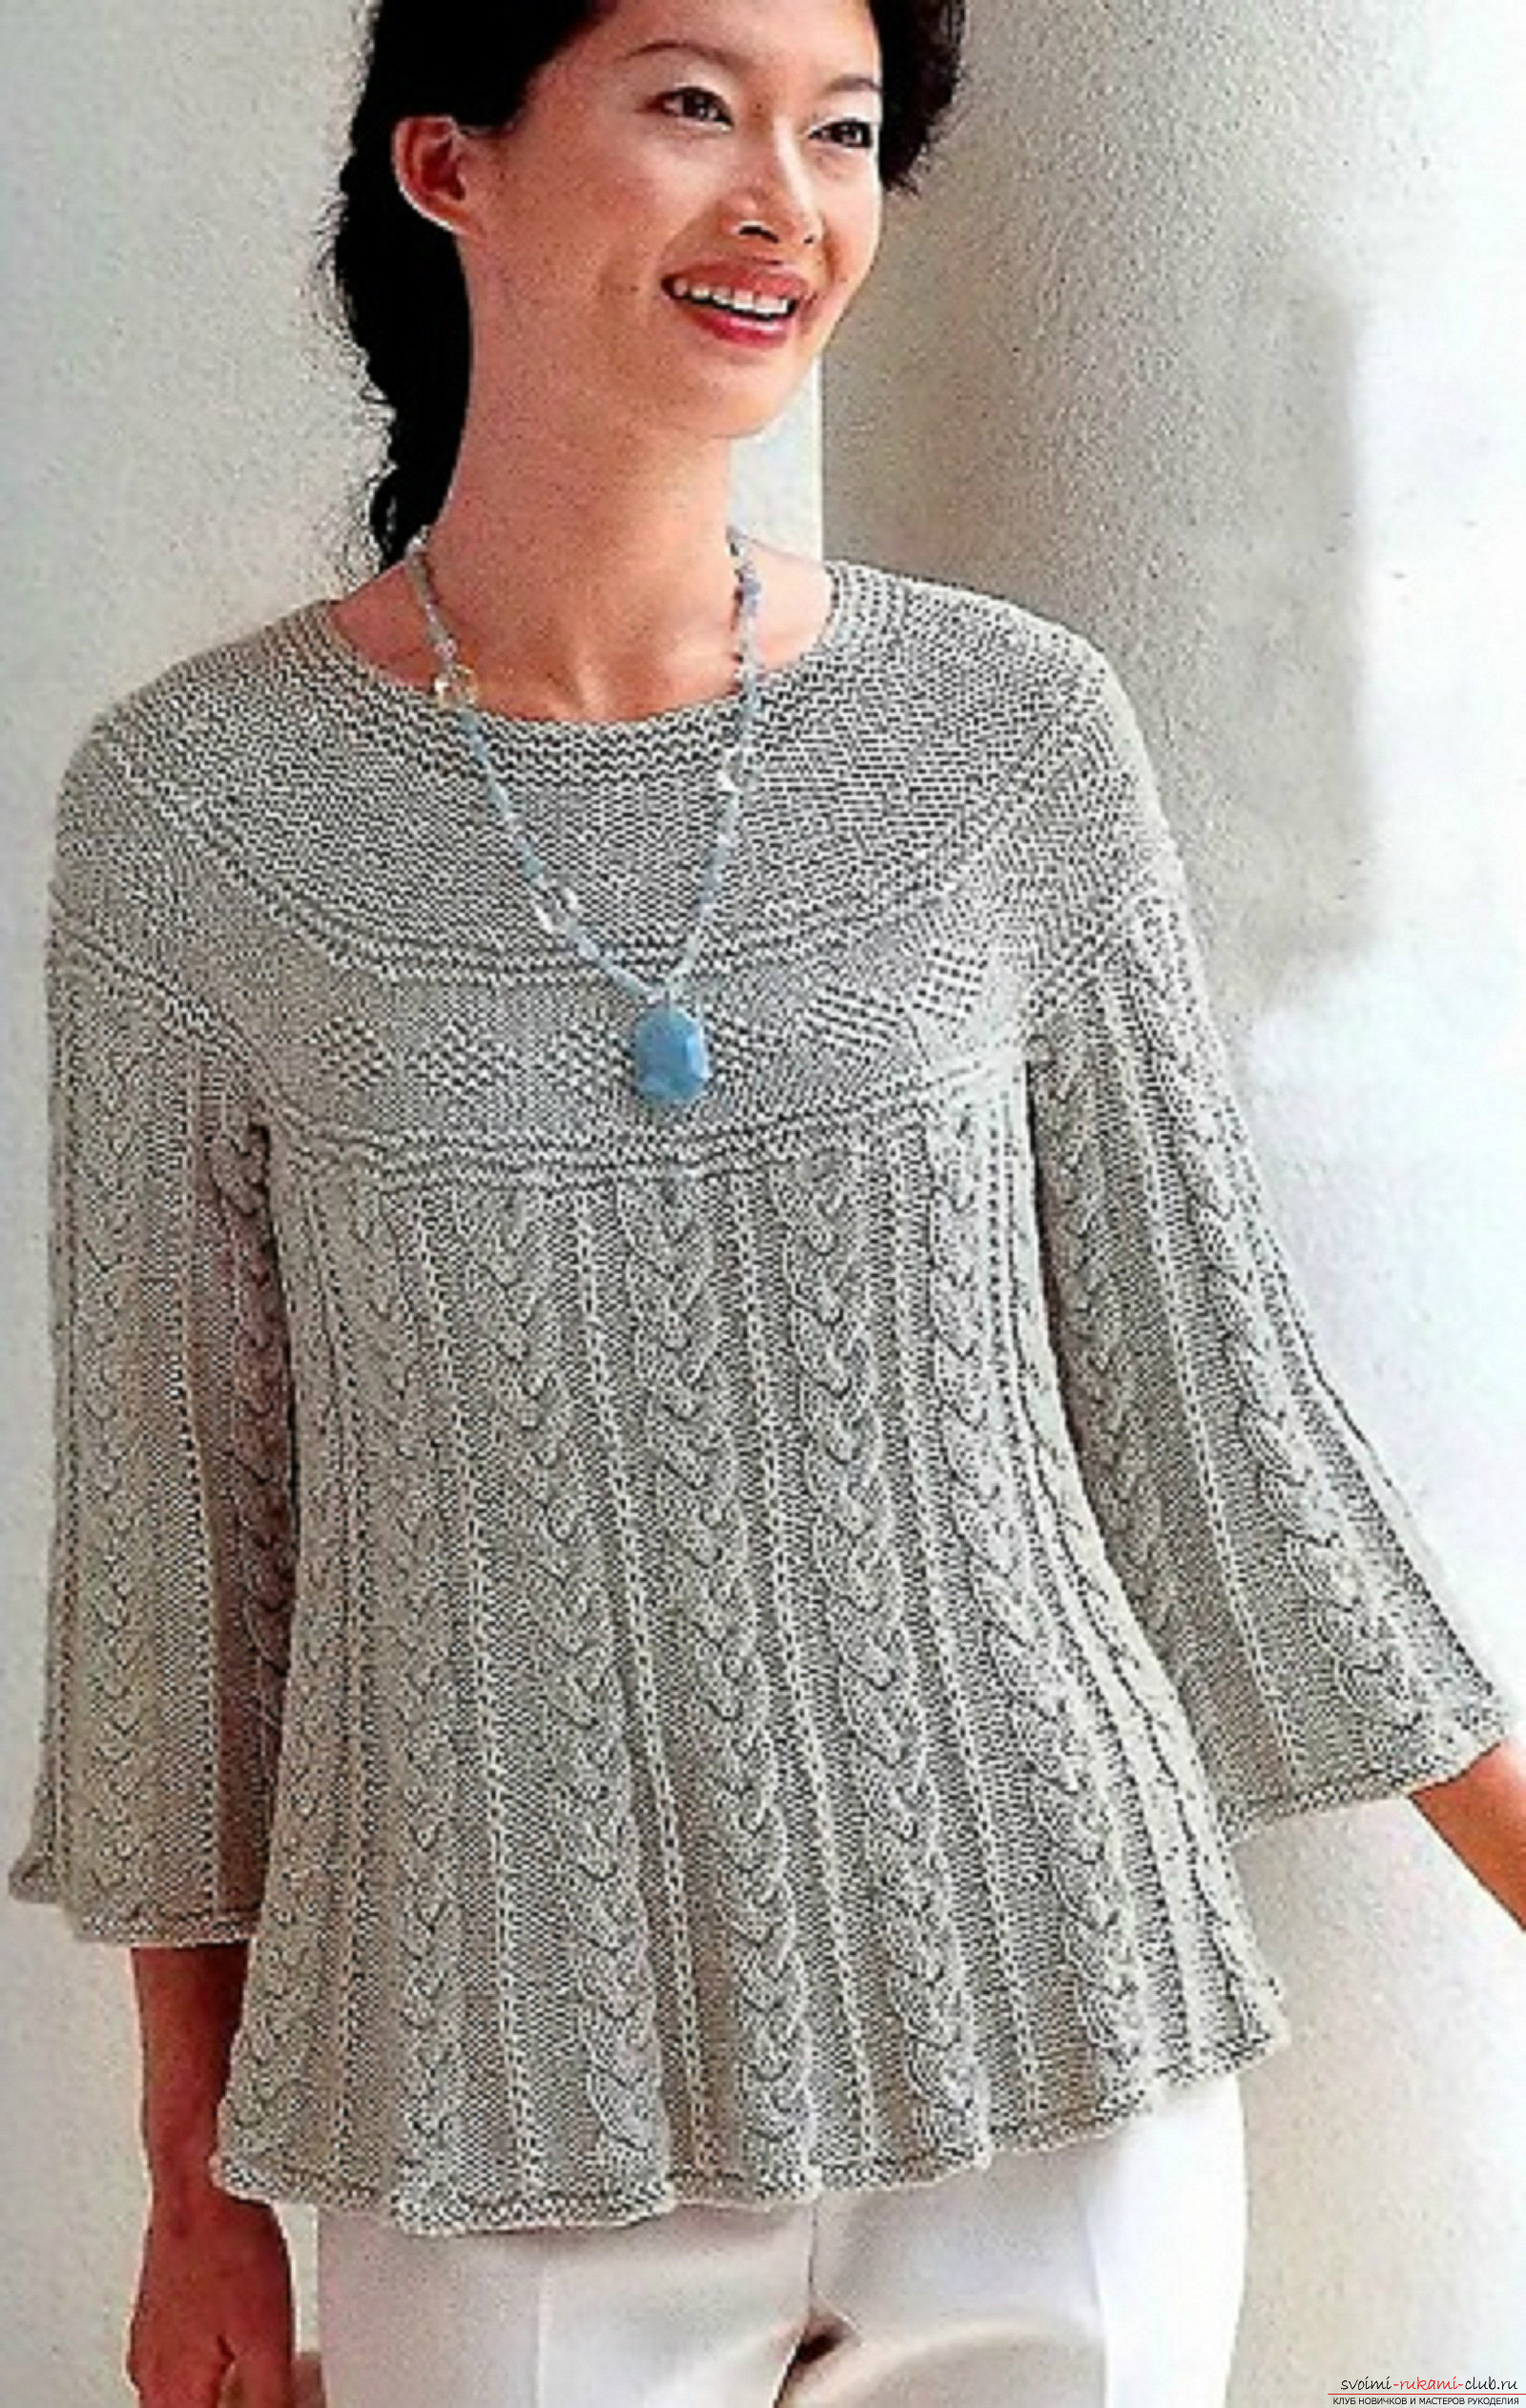 a knitted woman 's tunic. Photo №1